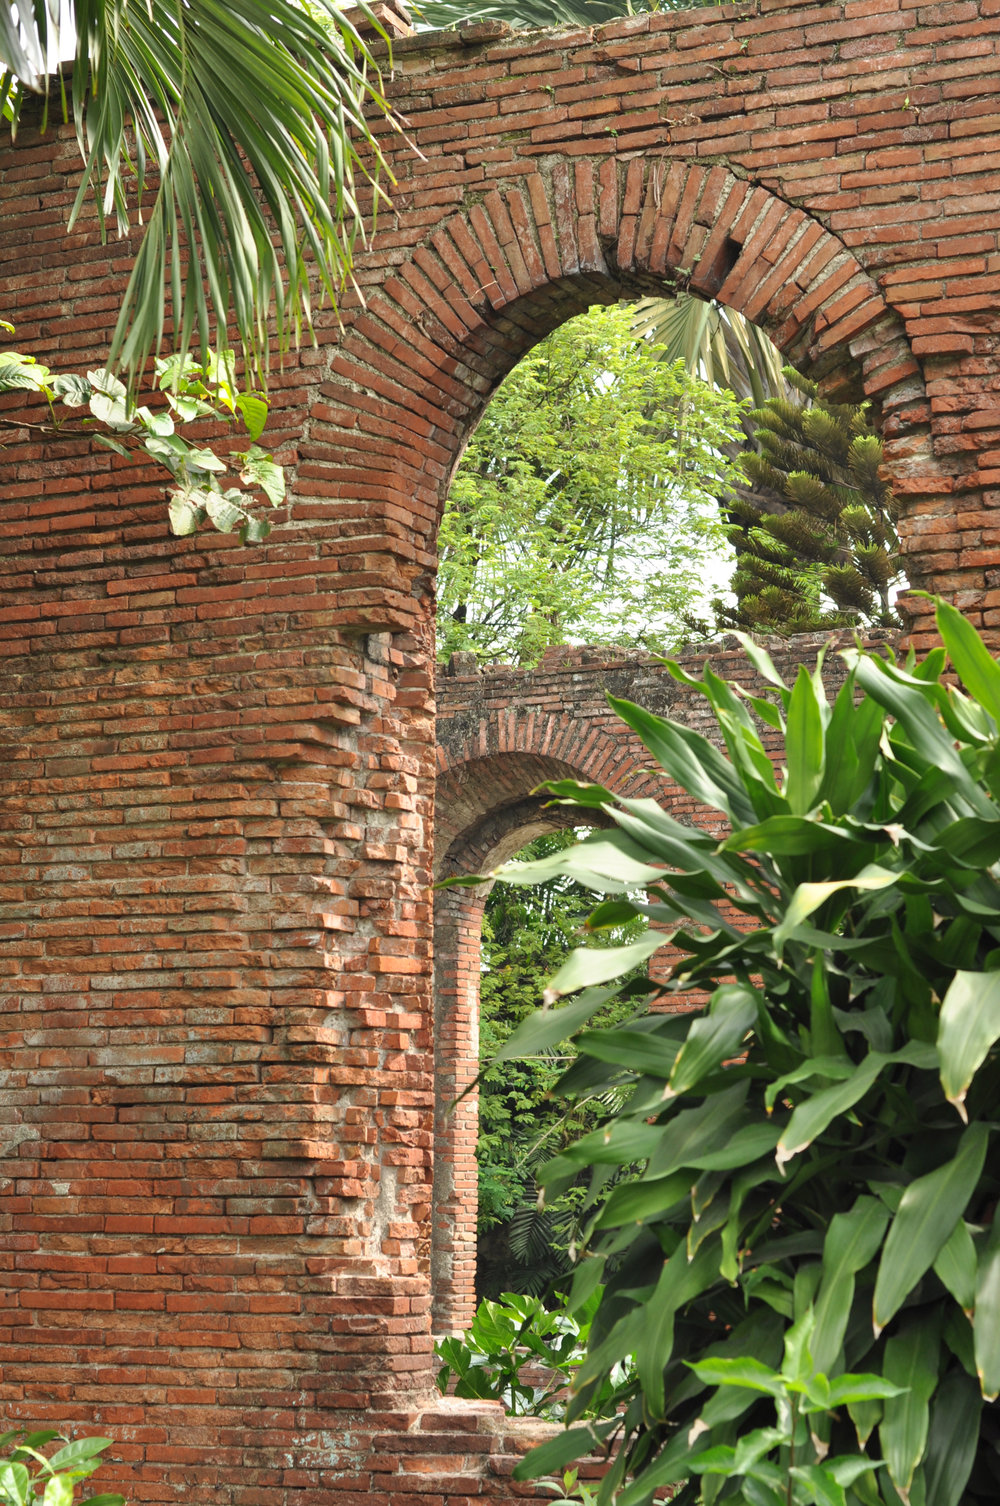 Archways in the remains of a wall in Fort Santiago Intramuros, Manila, Philippines